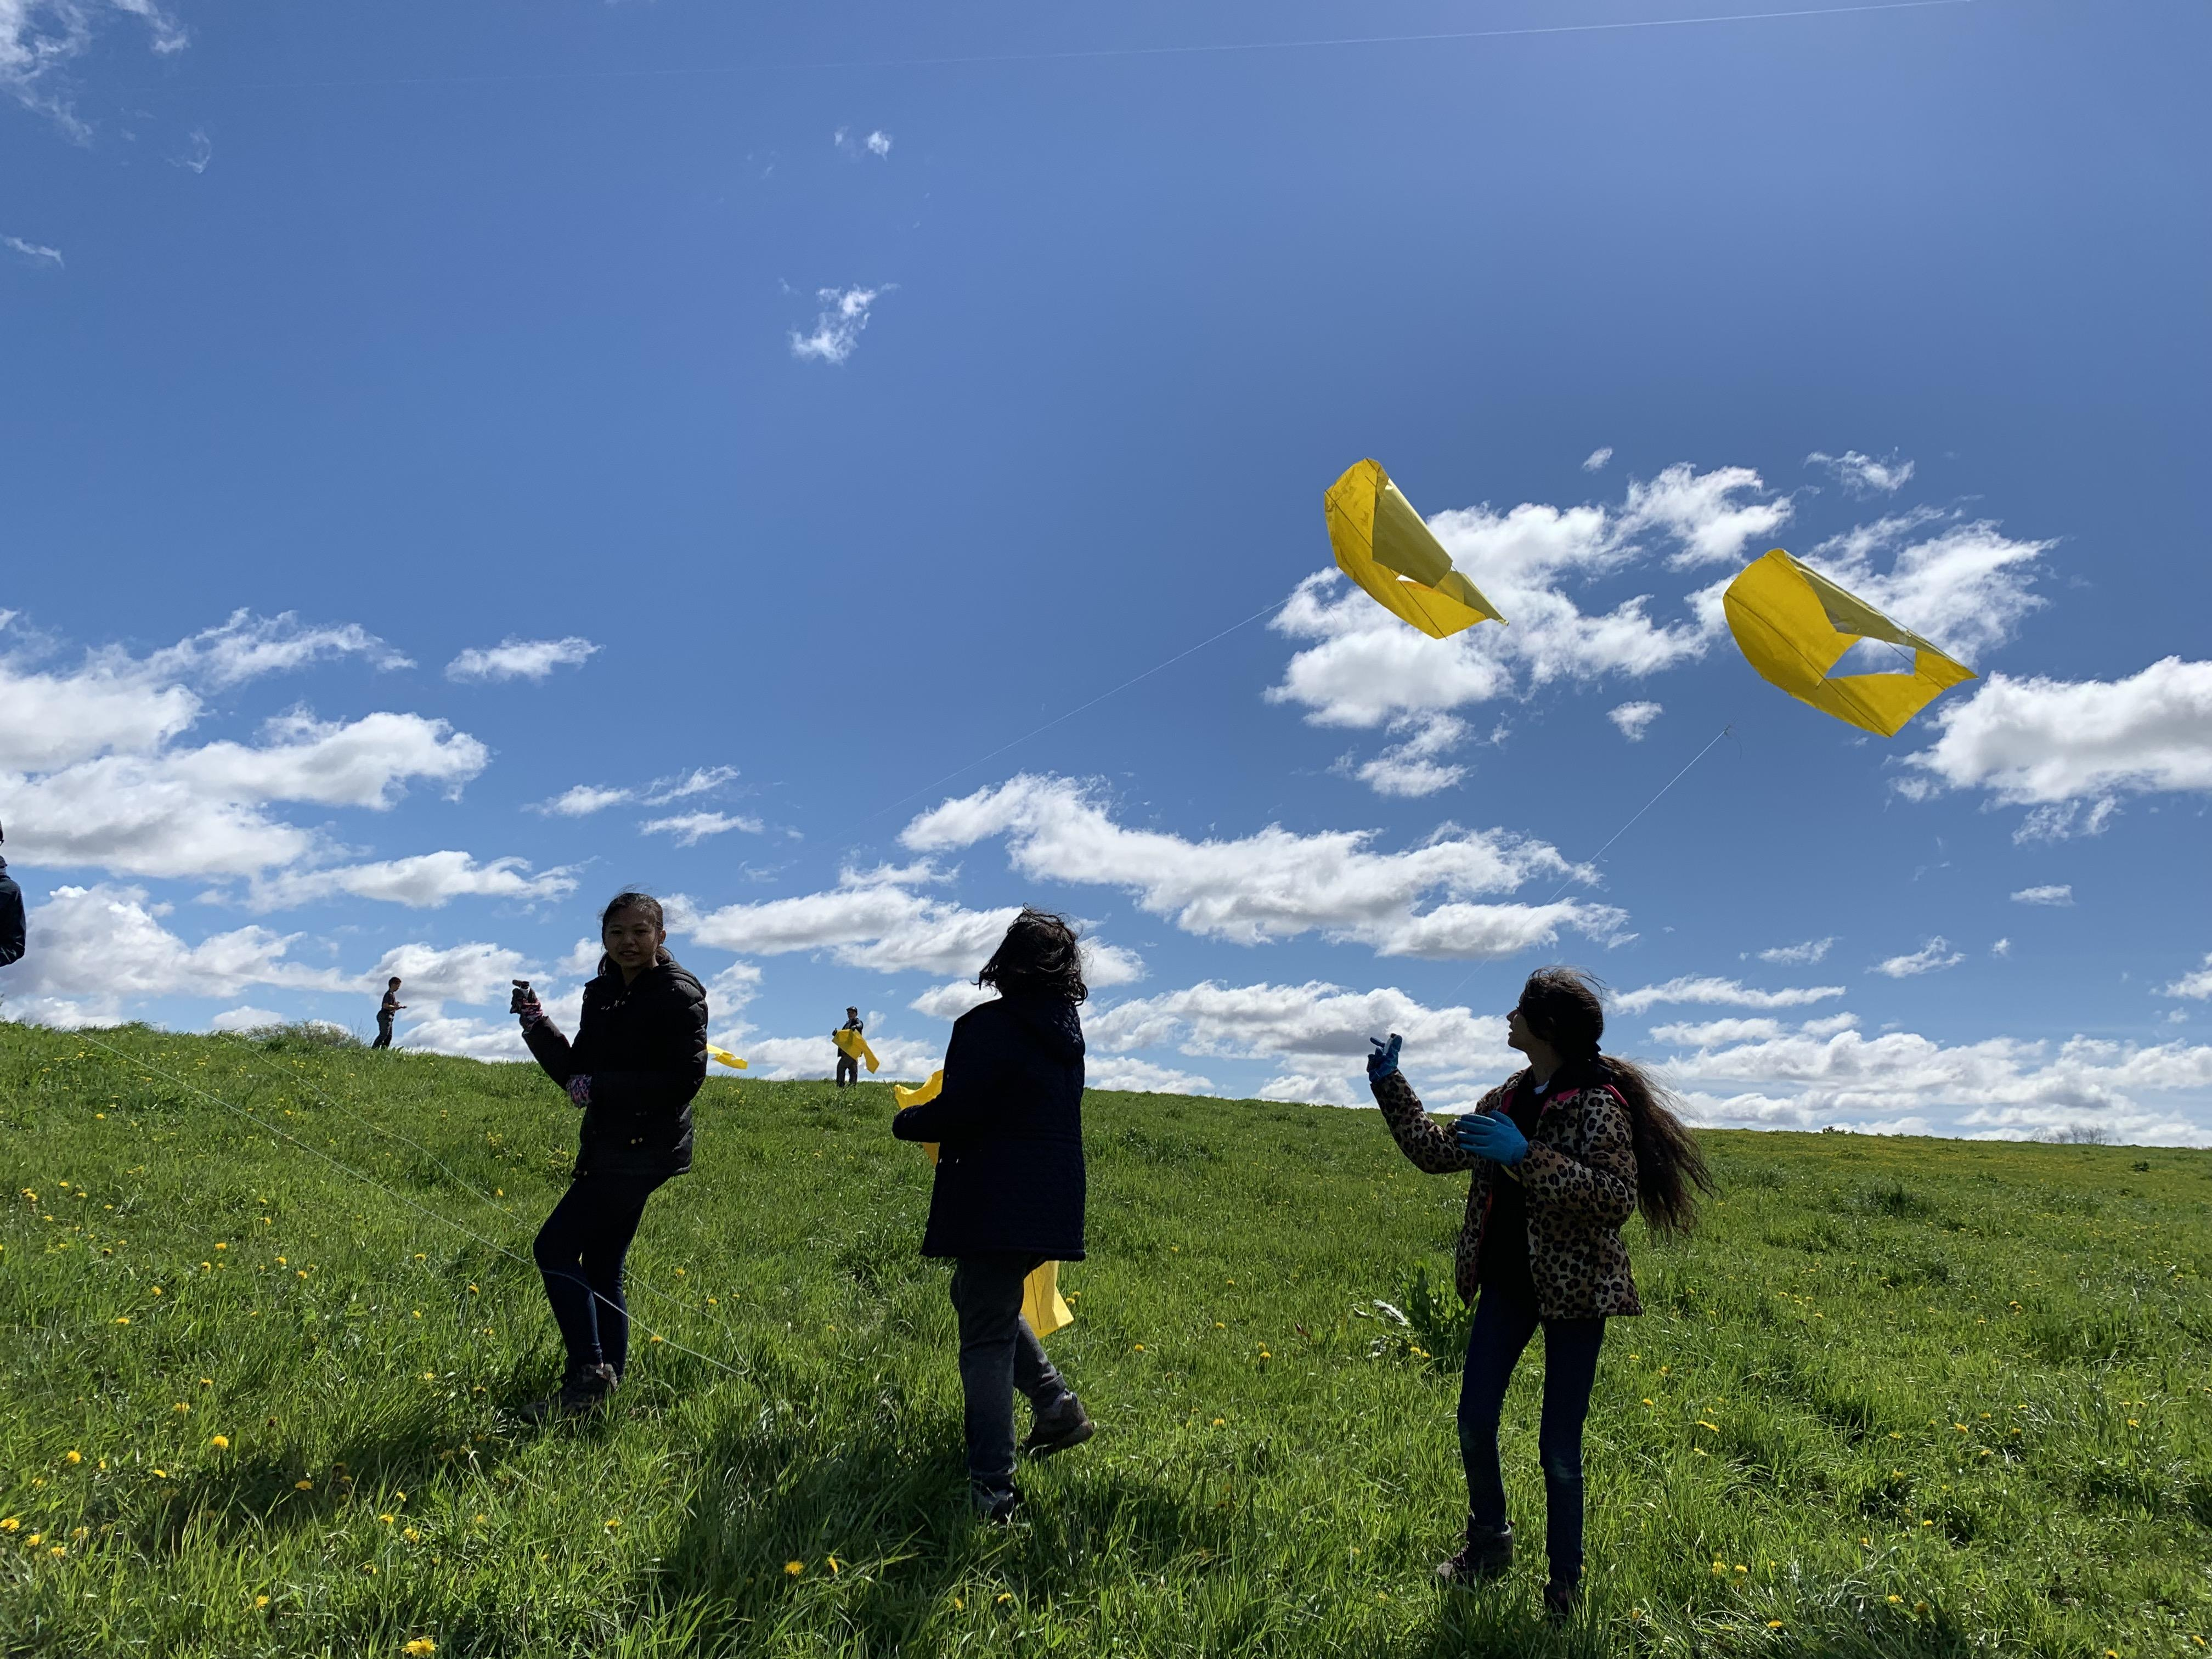 Outdoor Education Trips students flying kite